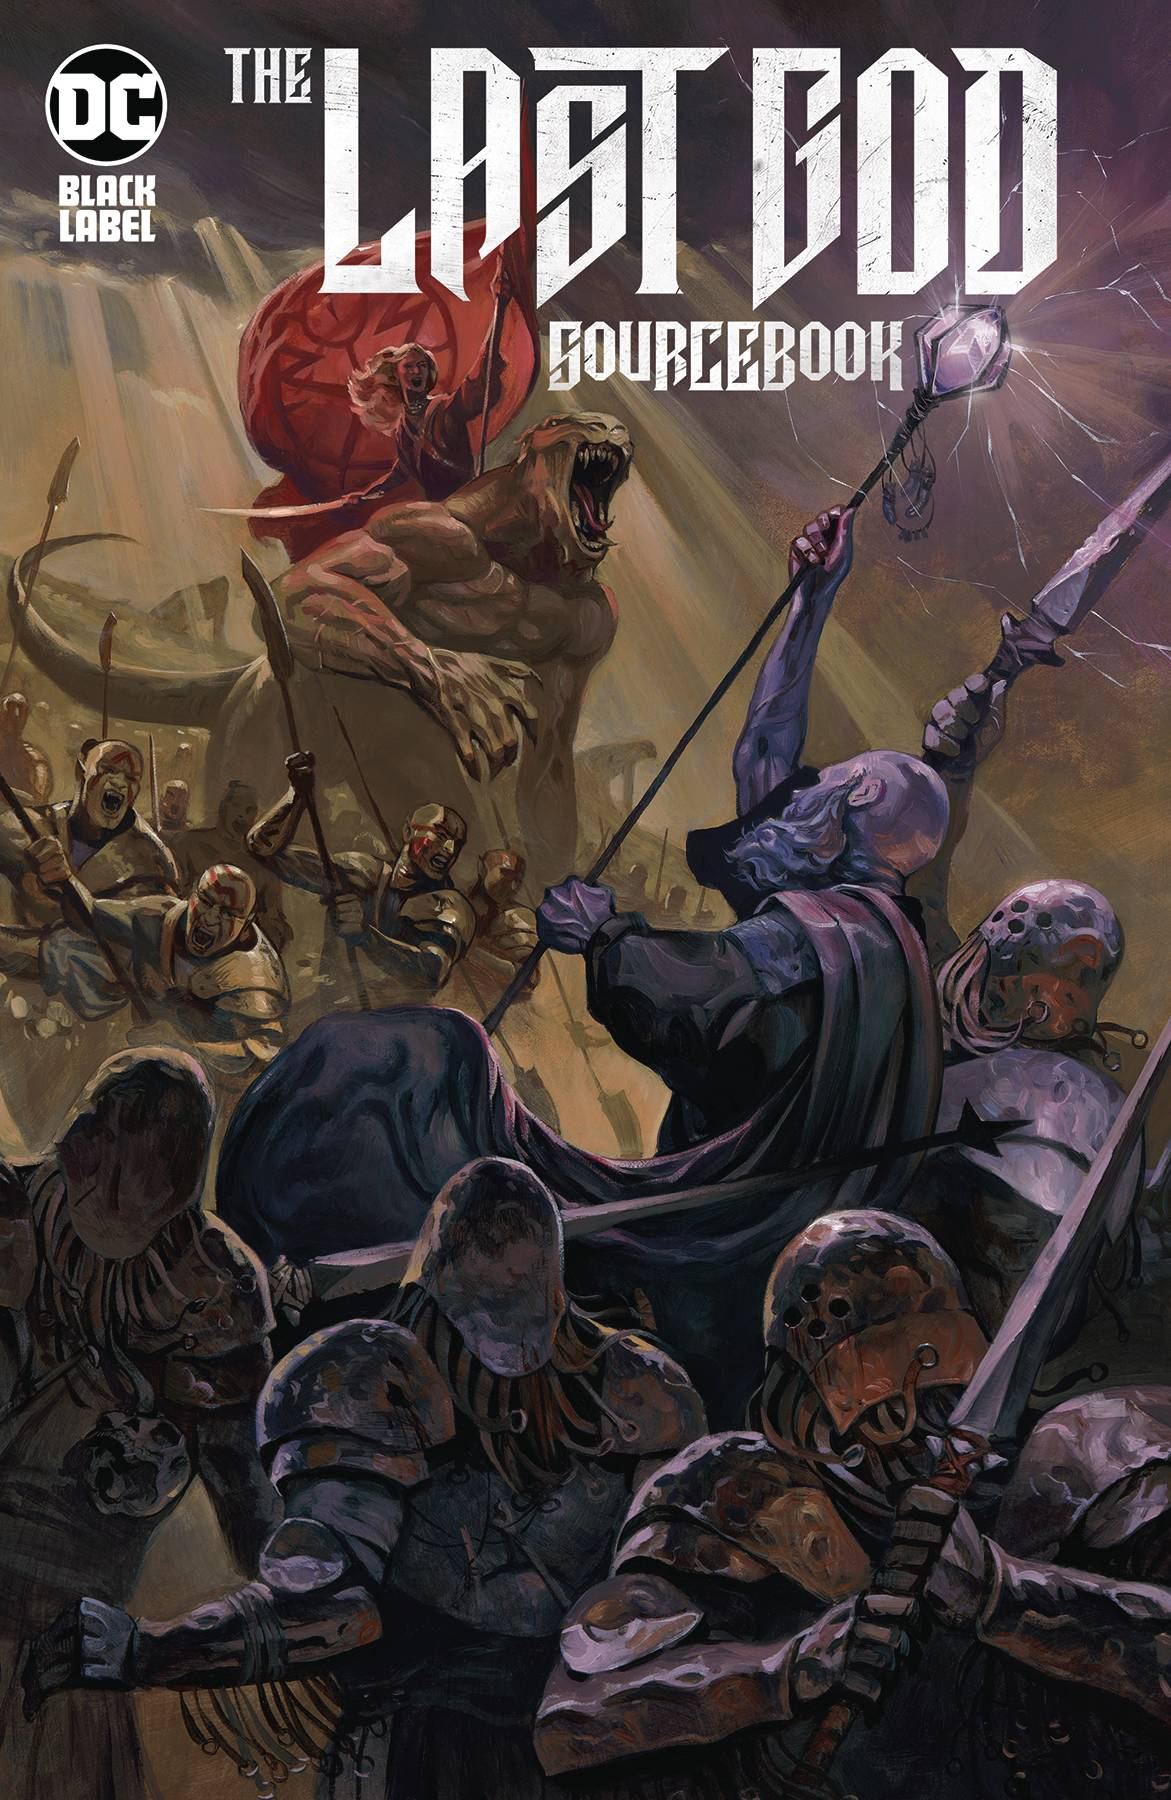 LAST GOD SOURCEBOOK